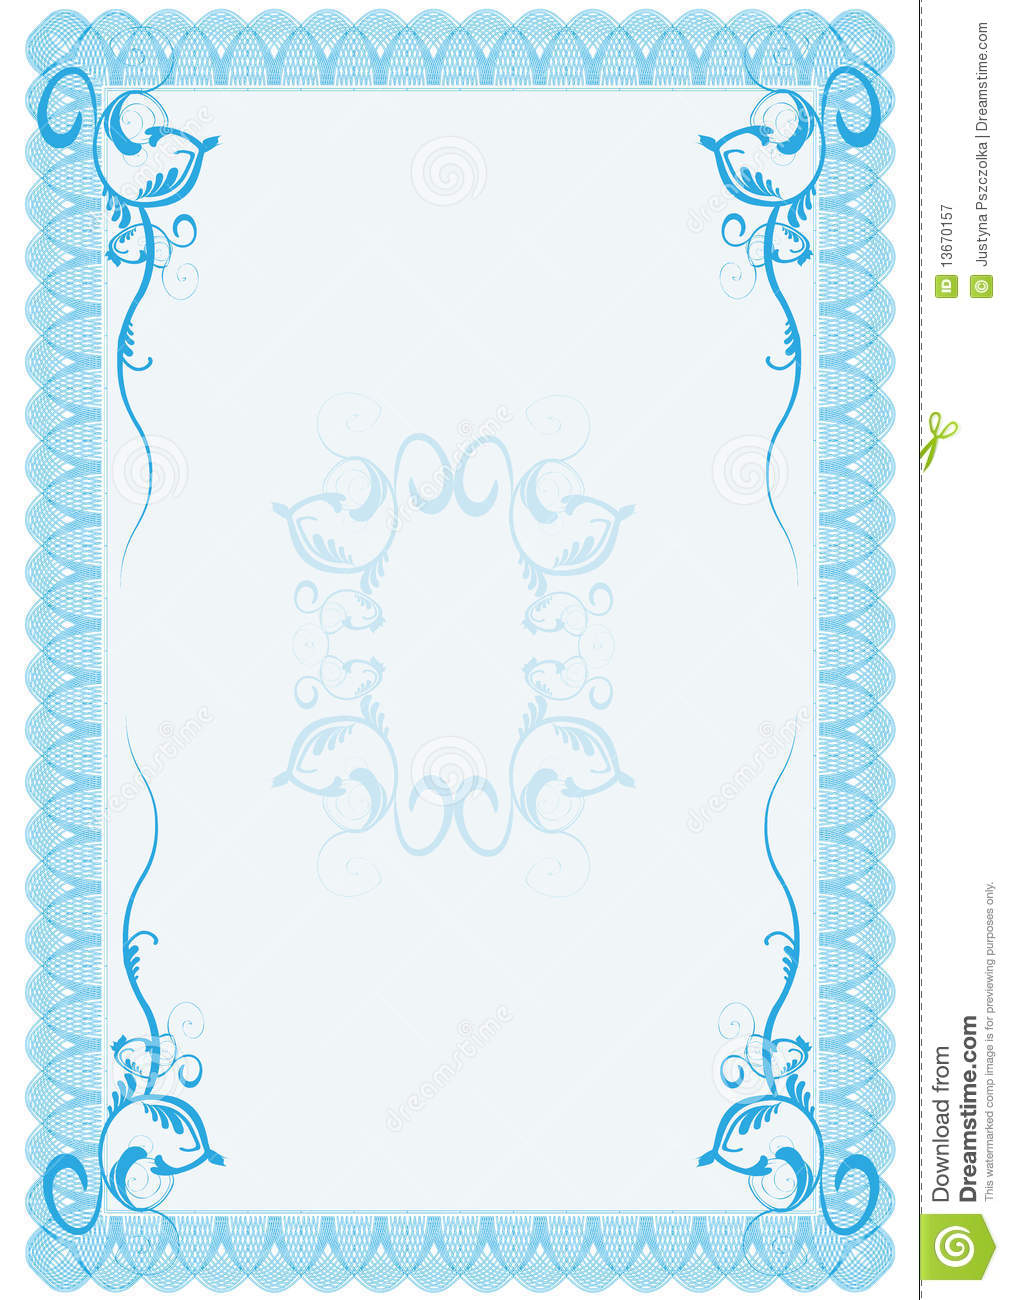 Document Frame Royalty Free Stock Photography Image